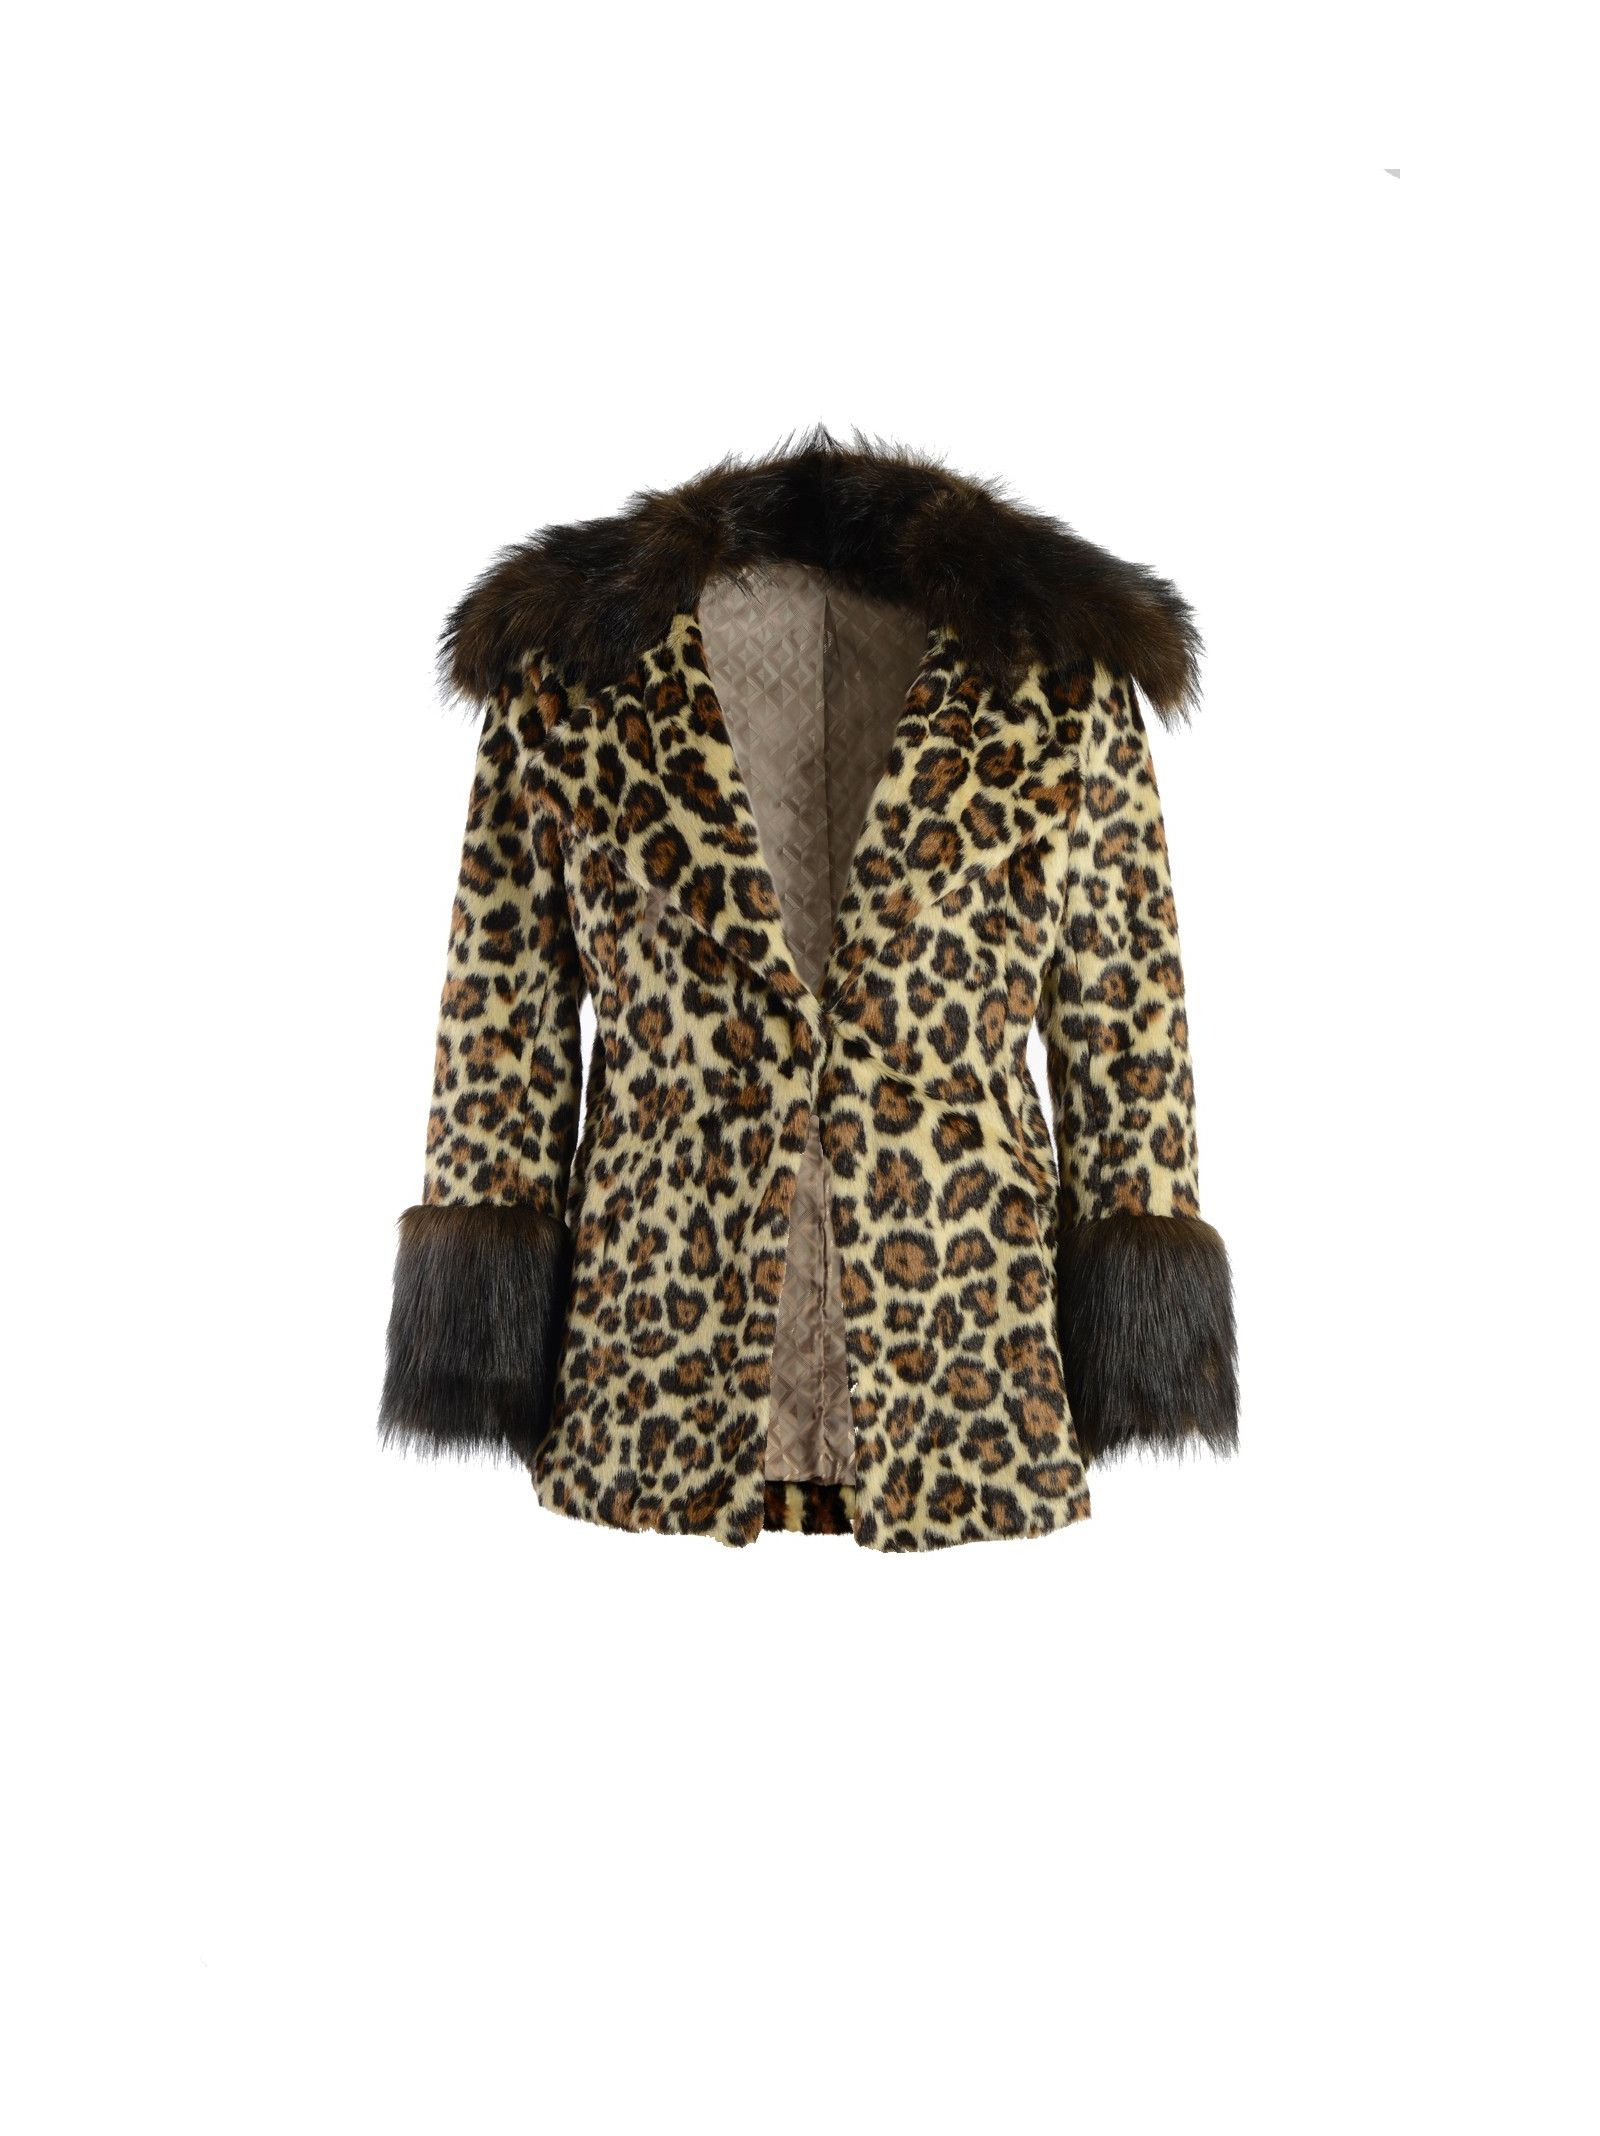 Eco-fur jacket with animalier print Details: Eco-fur, Animalier print, Collar and cuffs in eco-fur, Two side pockets, Lined